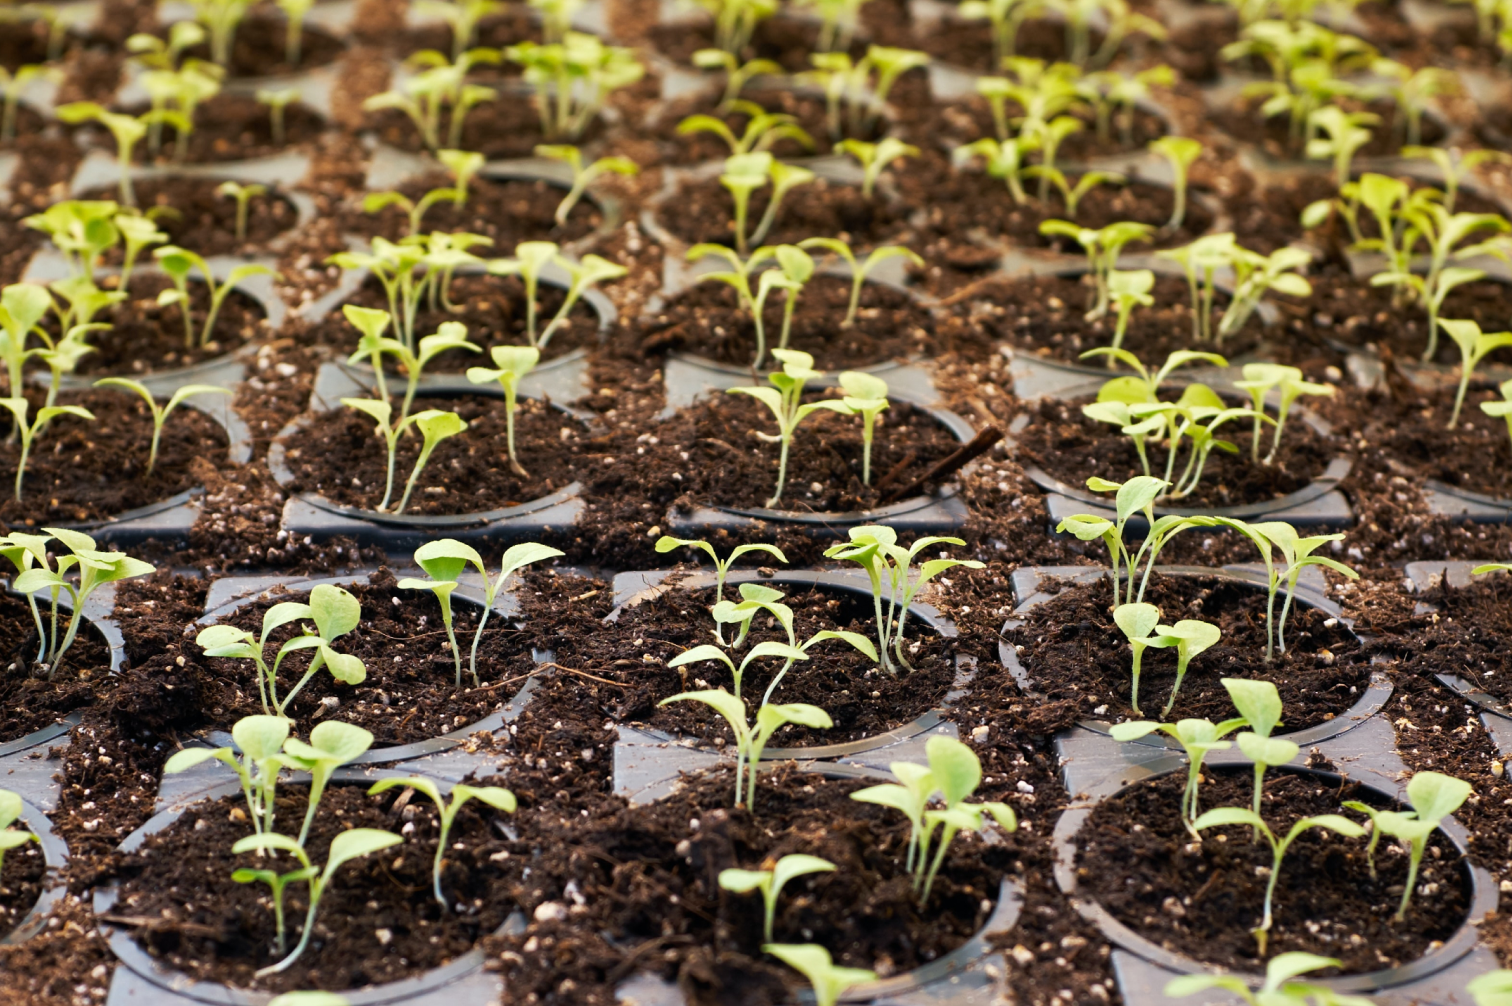 A closeup on rows and rows of small green plants sprouting from small plastic pots